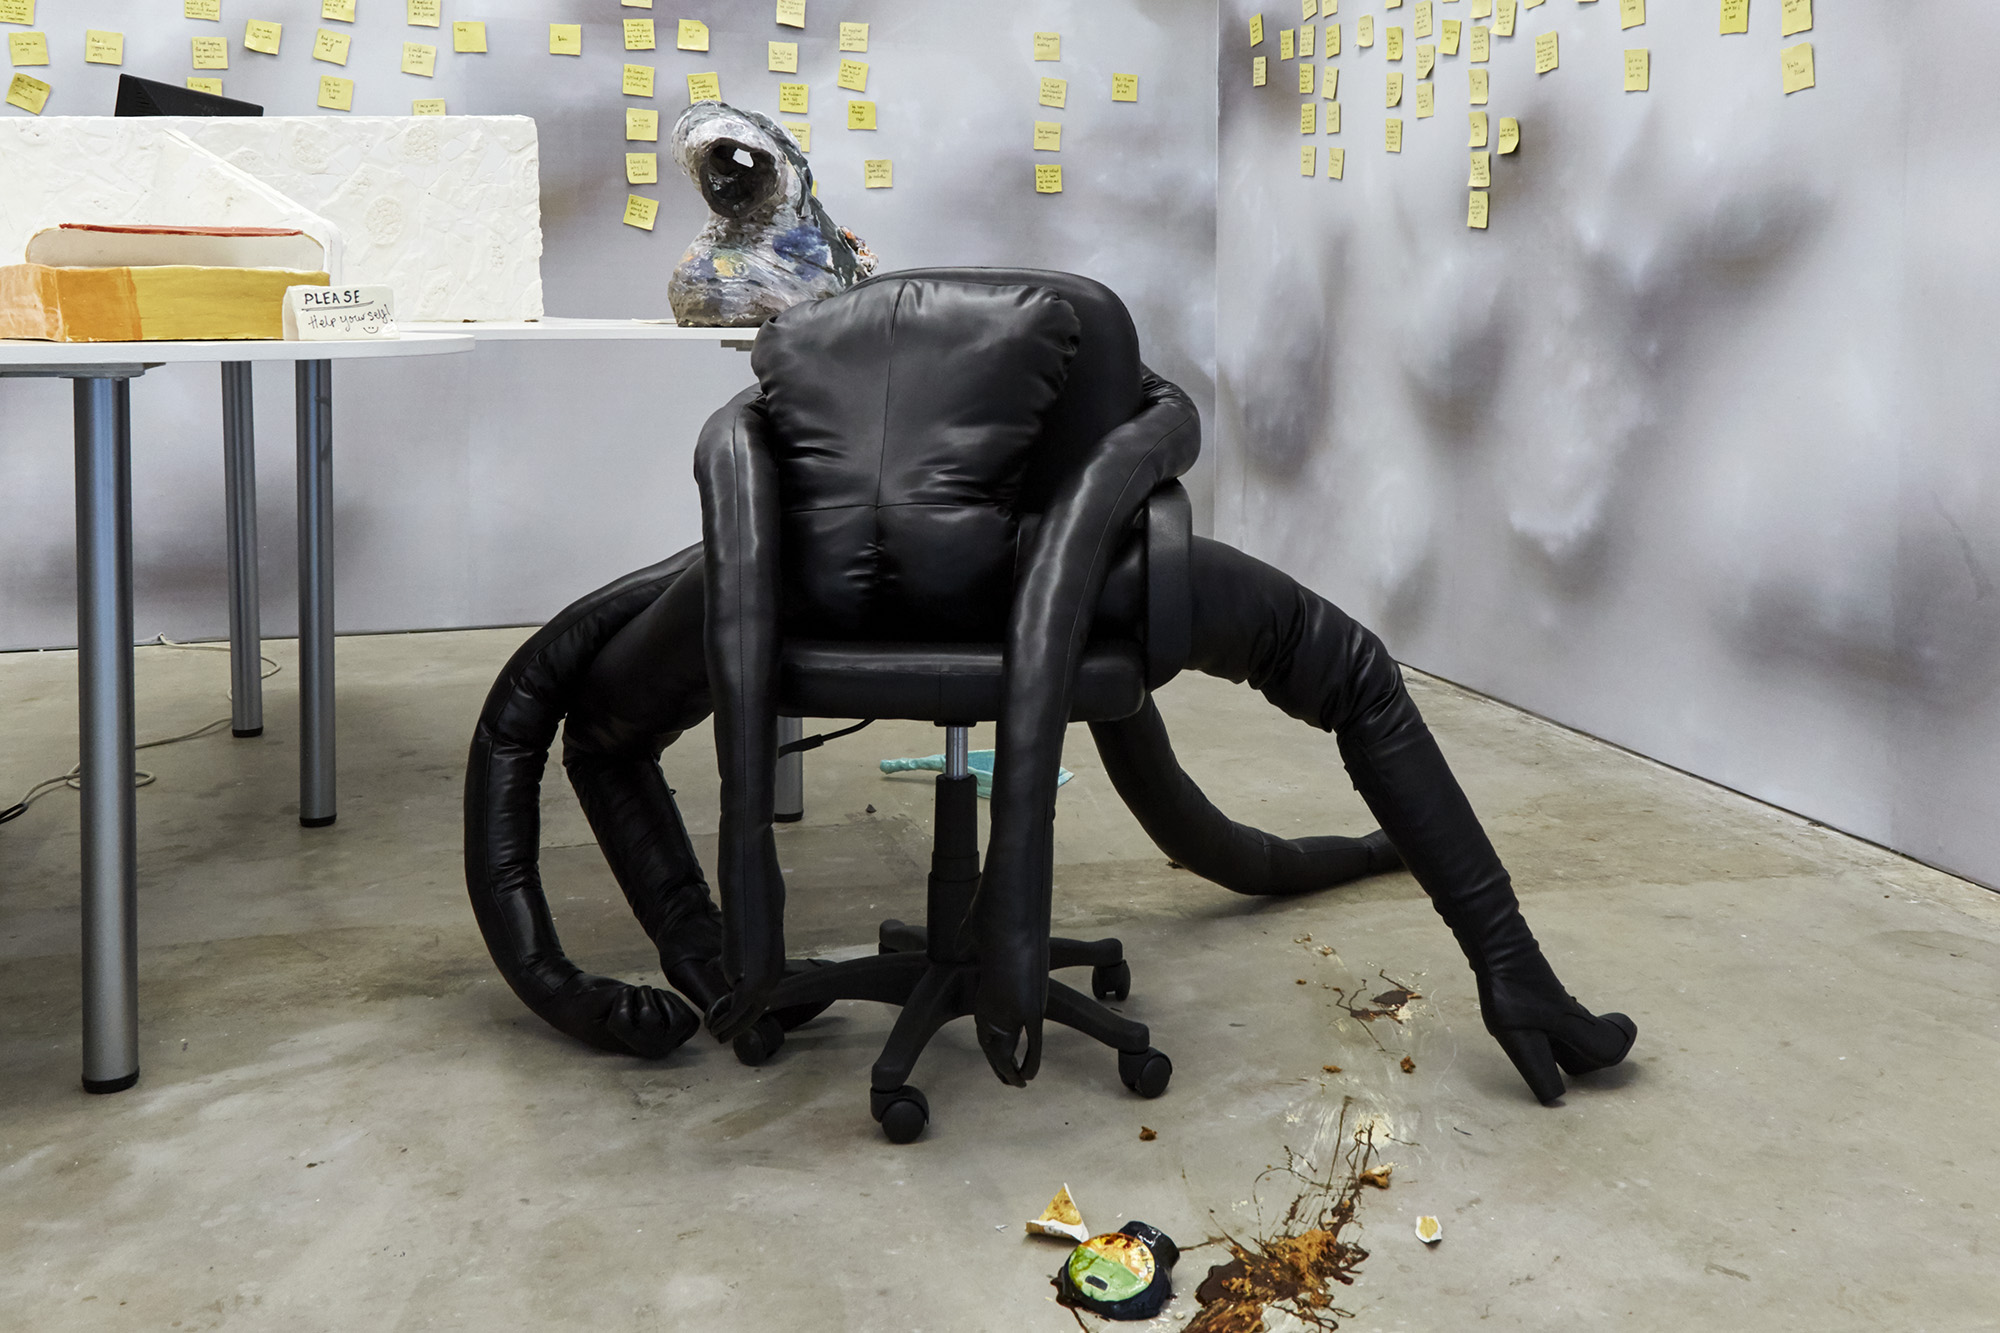 I've got you (made in collaboration with Mamoo Mendick) Leather, boots, filling, office chair 100 x 160 x 150cm, 2019